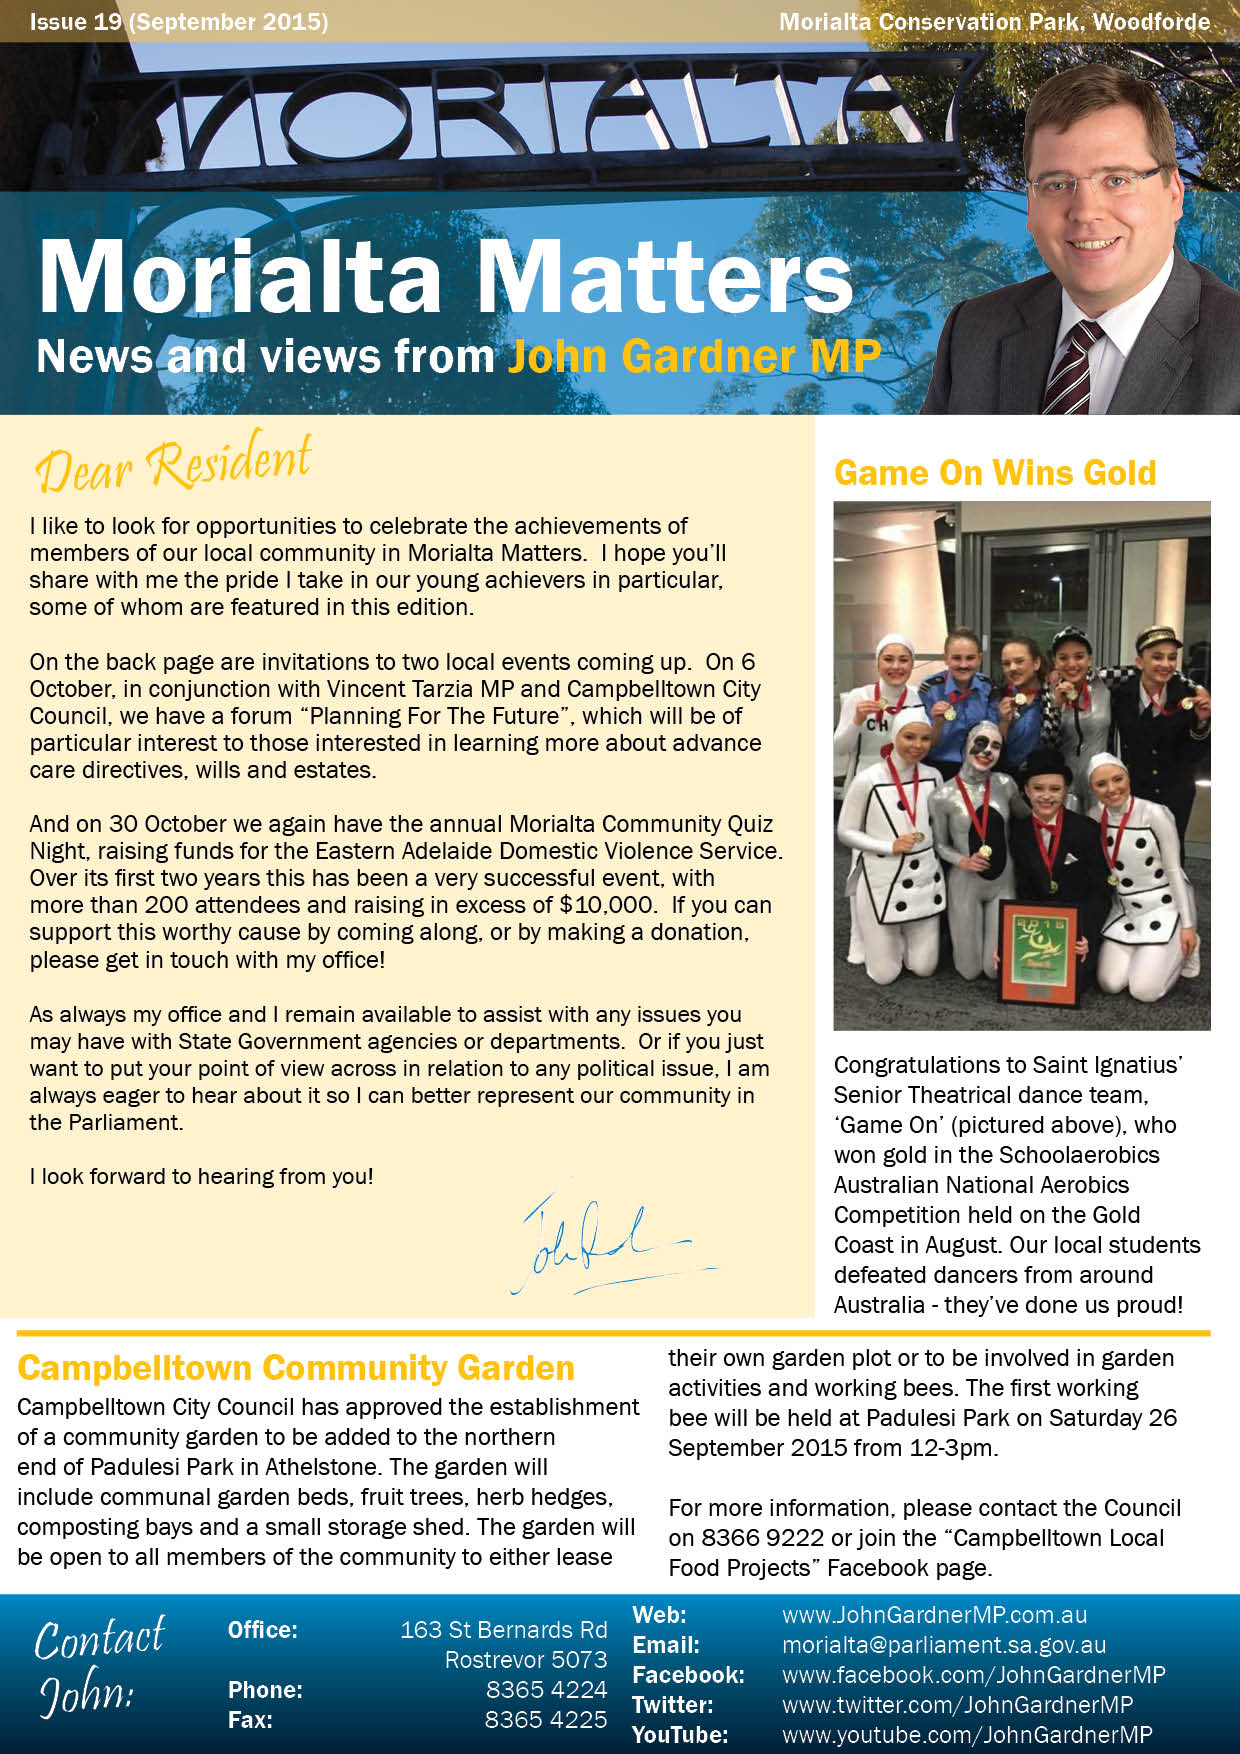 Morialta Matters - Issue 19 (September 2015) - John Gardner